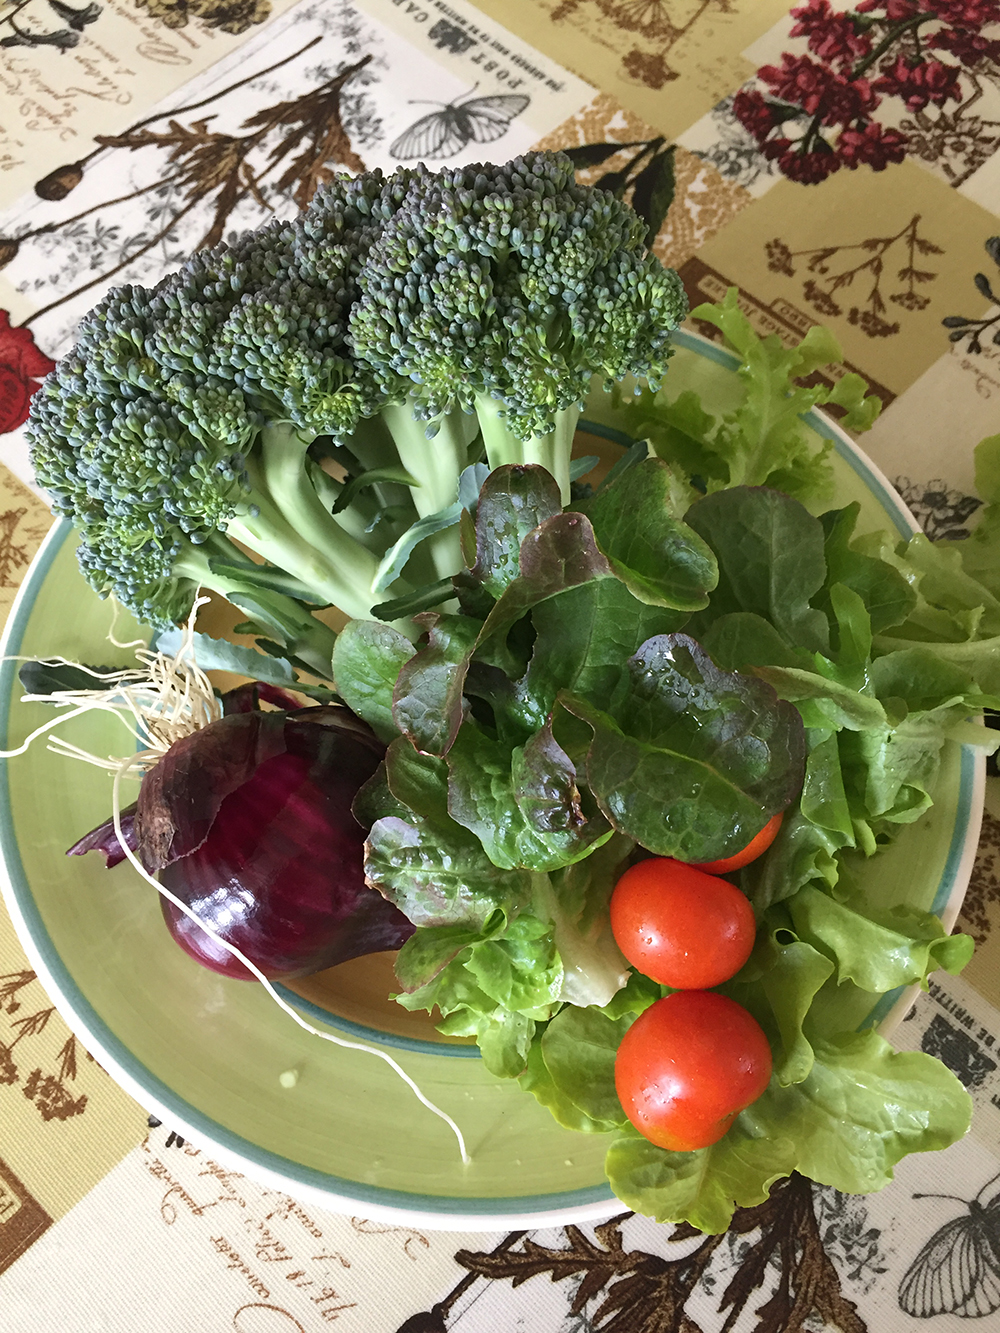 greens from the garden